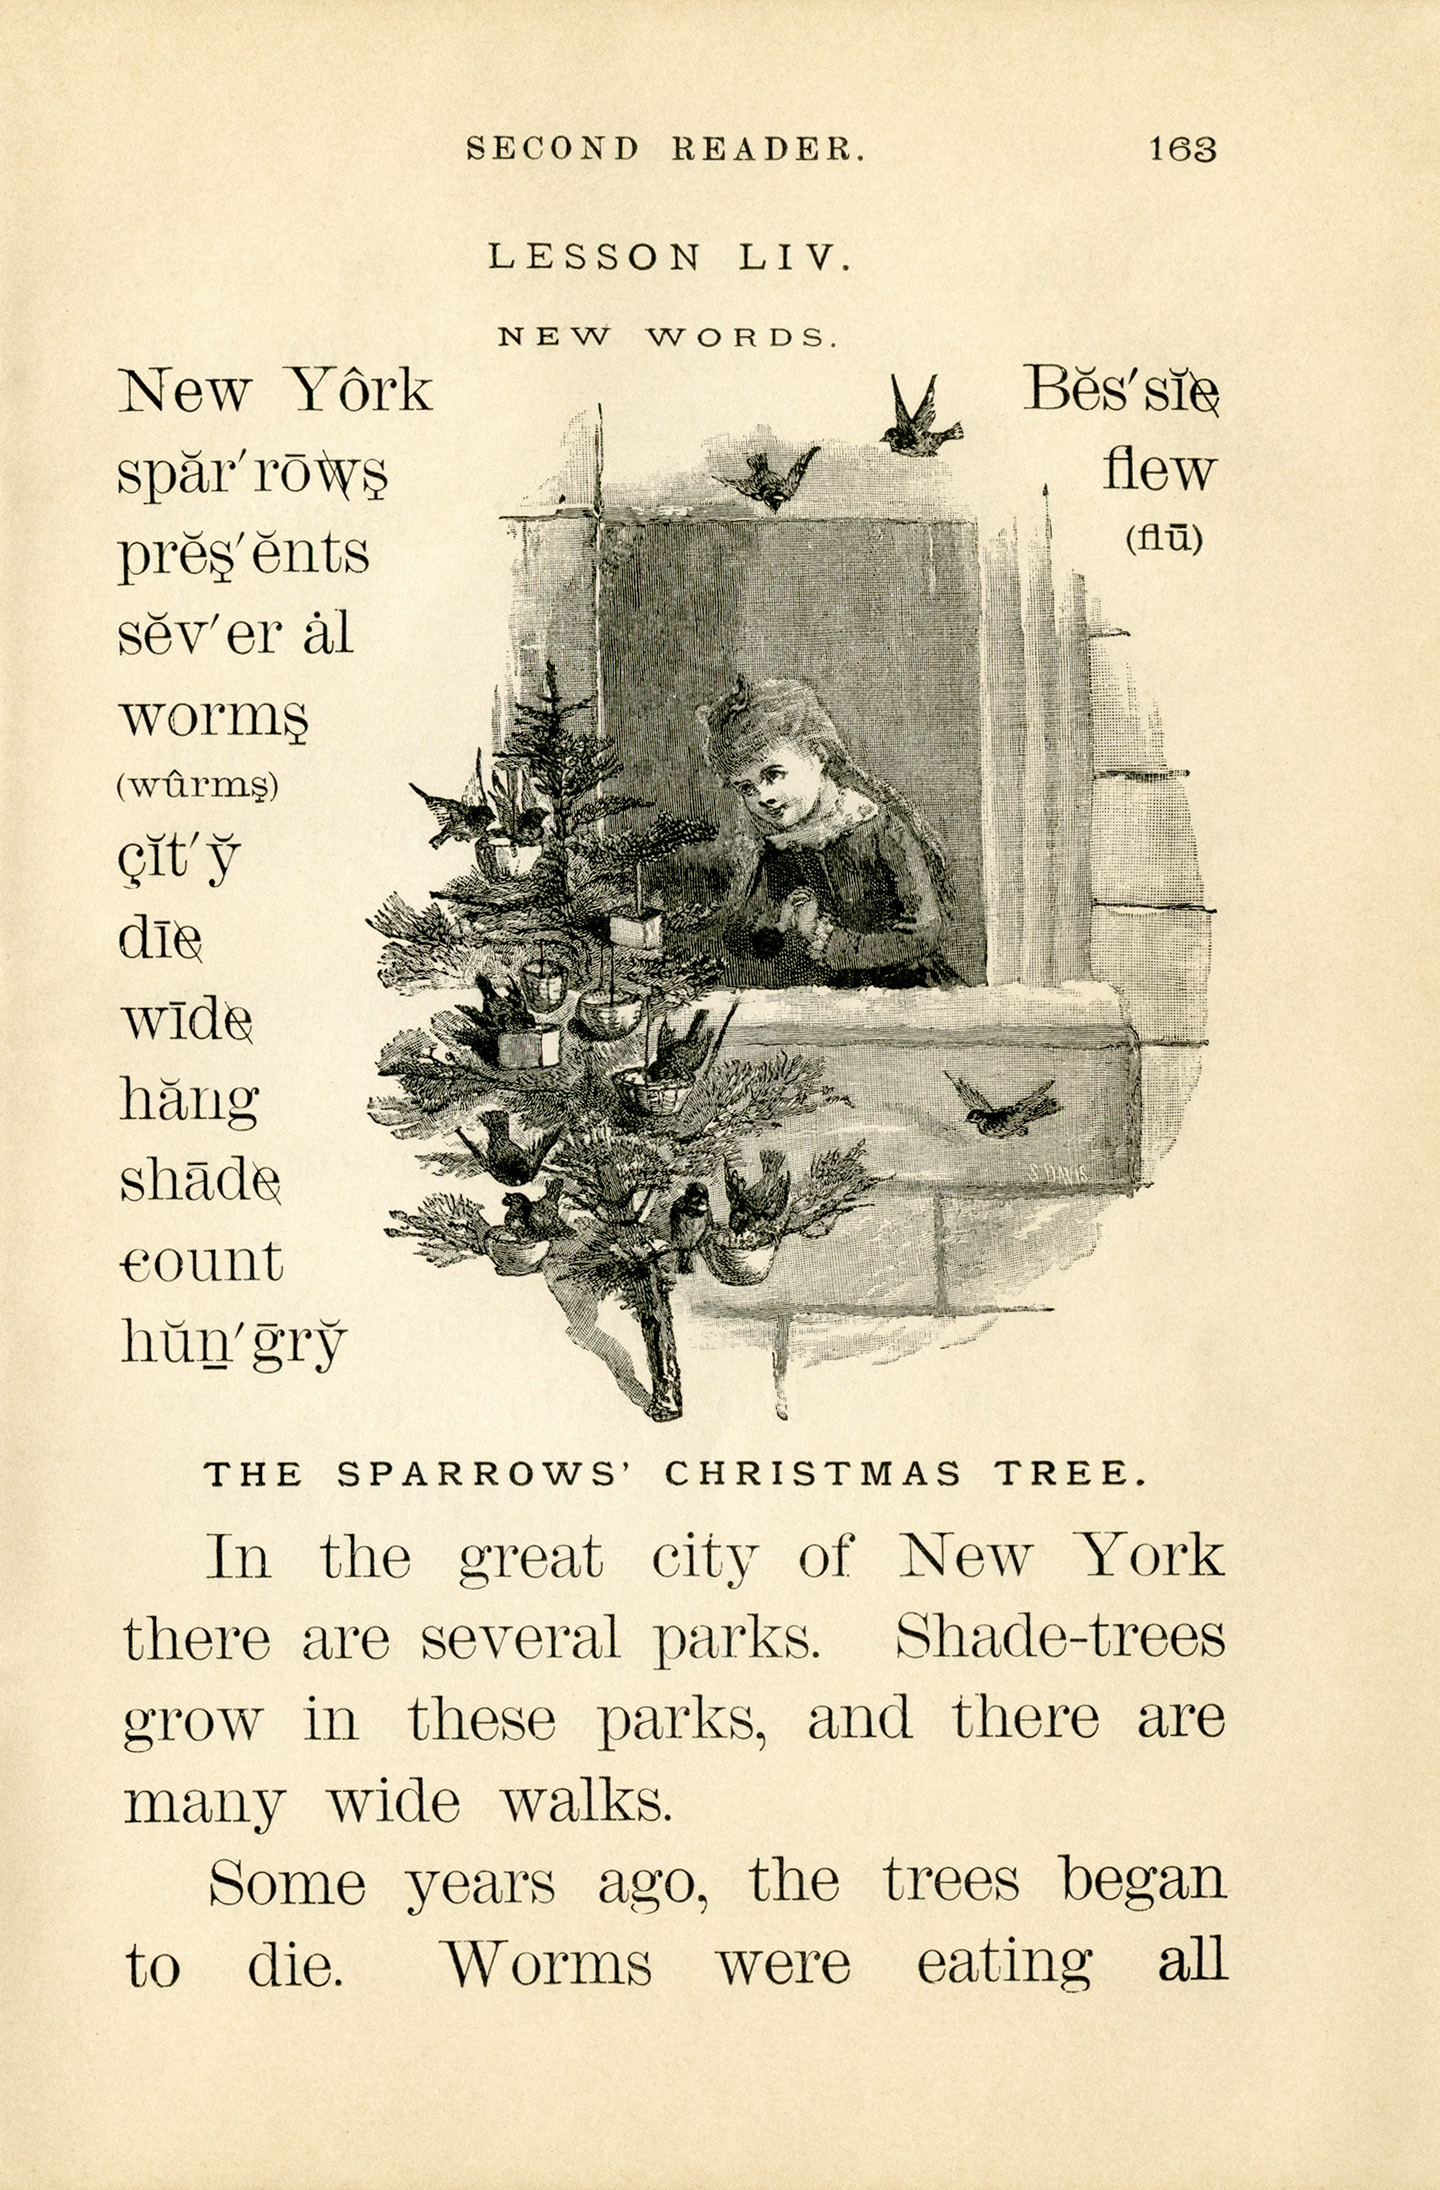 Free printable Sparrows Christmas Tree story